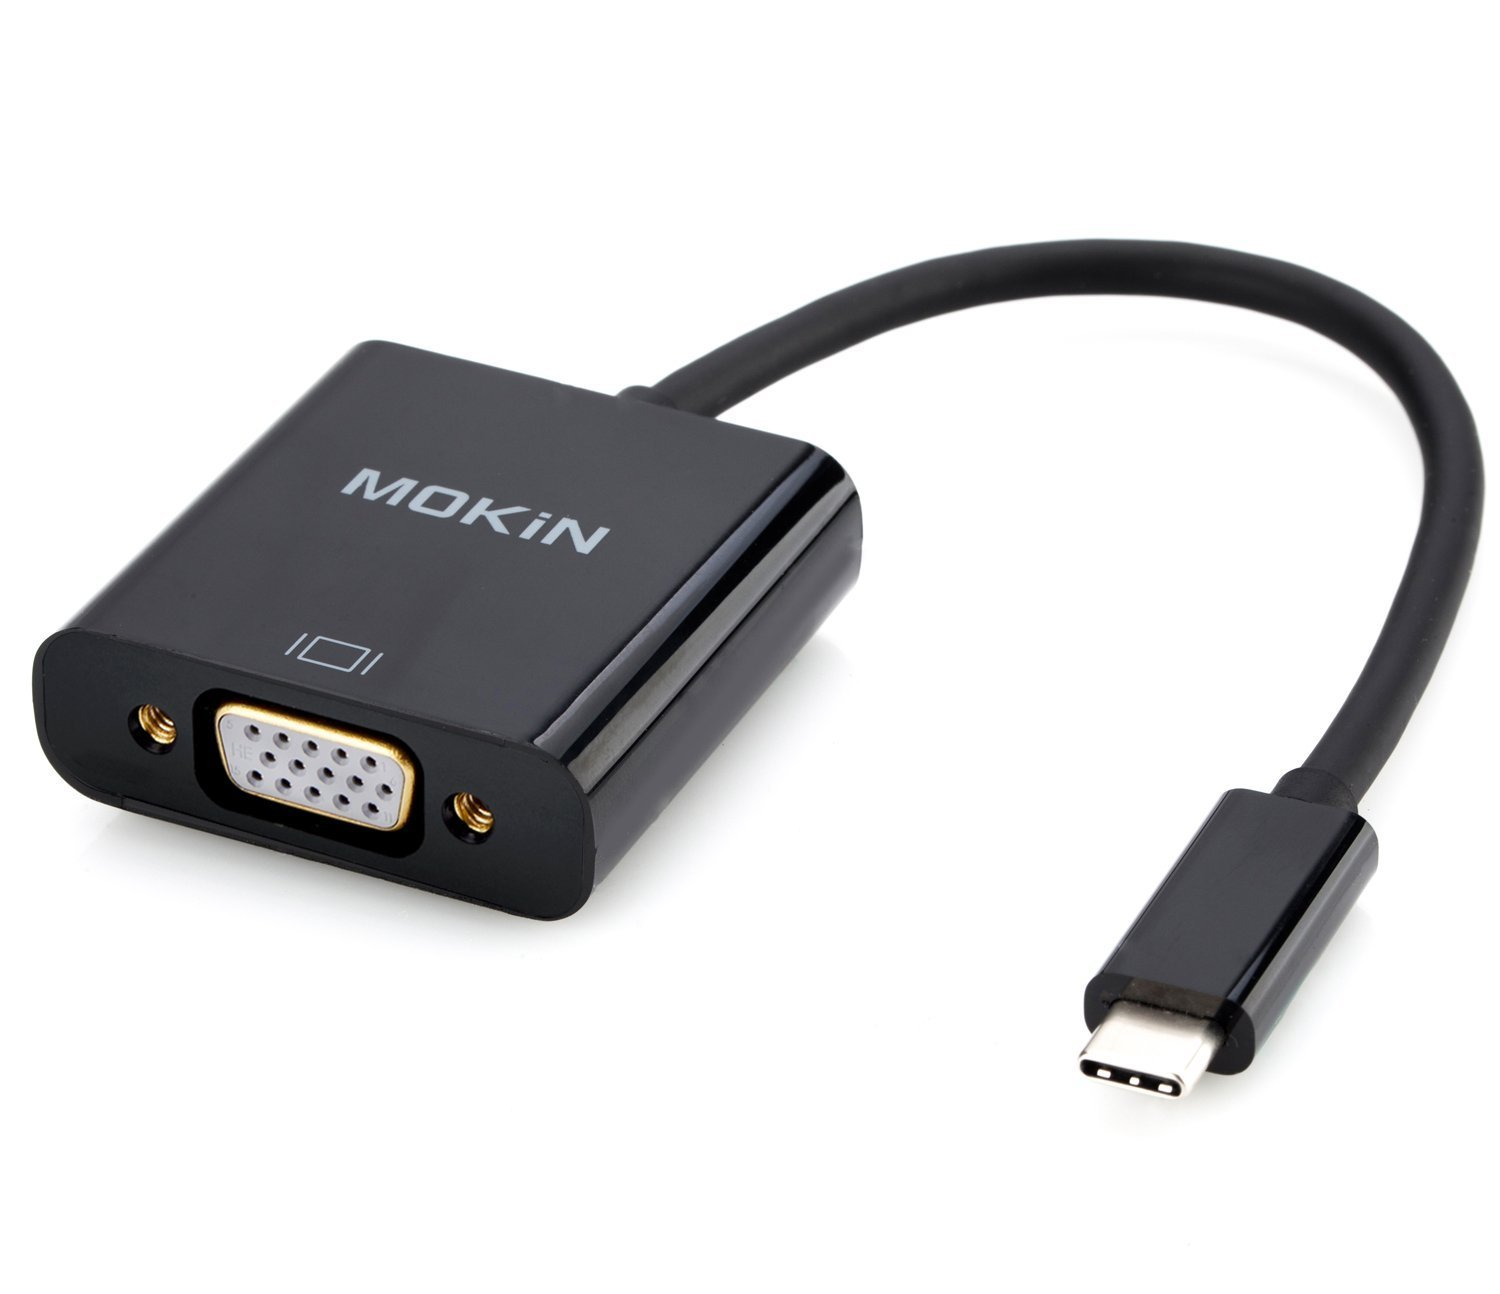 USB-C To VGA Adapter 1080P @60Hz For 2017 MacBook Pro, Lenovo 900, Dell XPS 13, HP Spectre x2 and more- Newest Updated Version … (C-VGA) by MOKiN